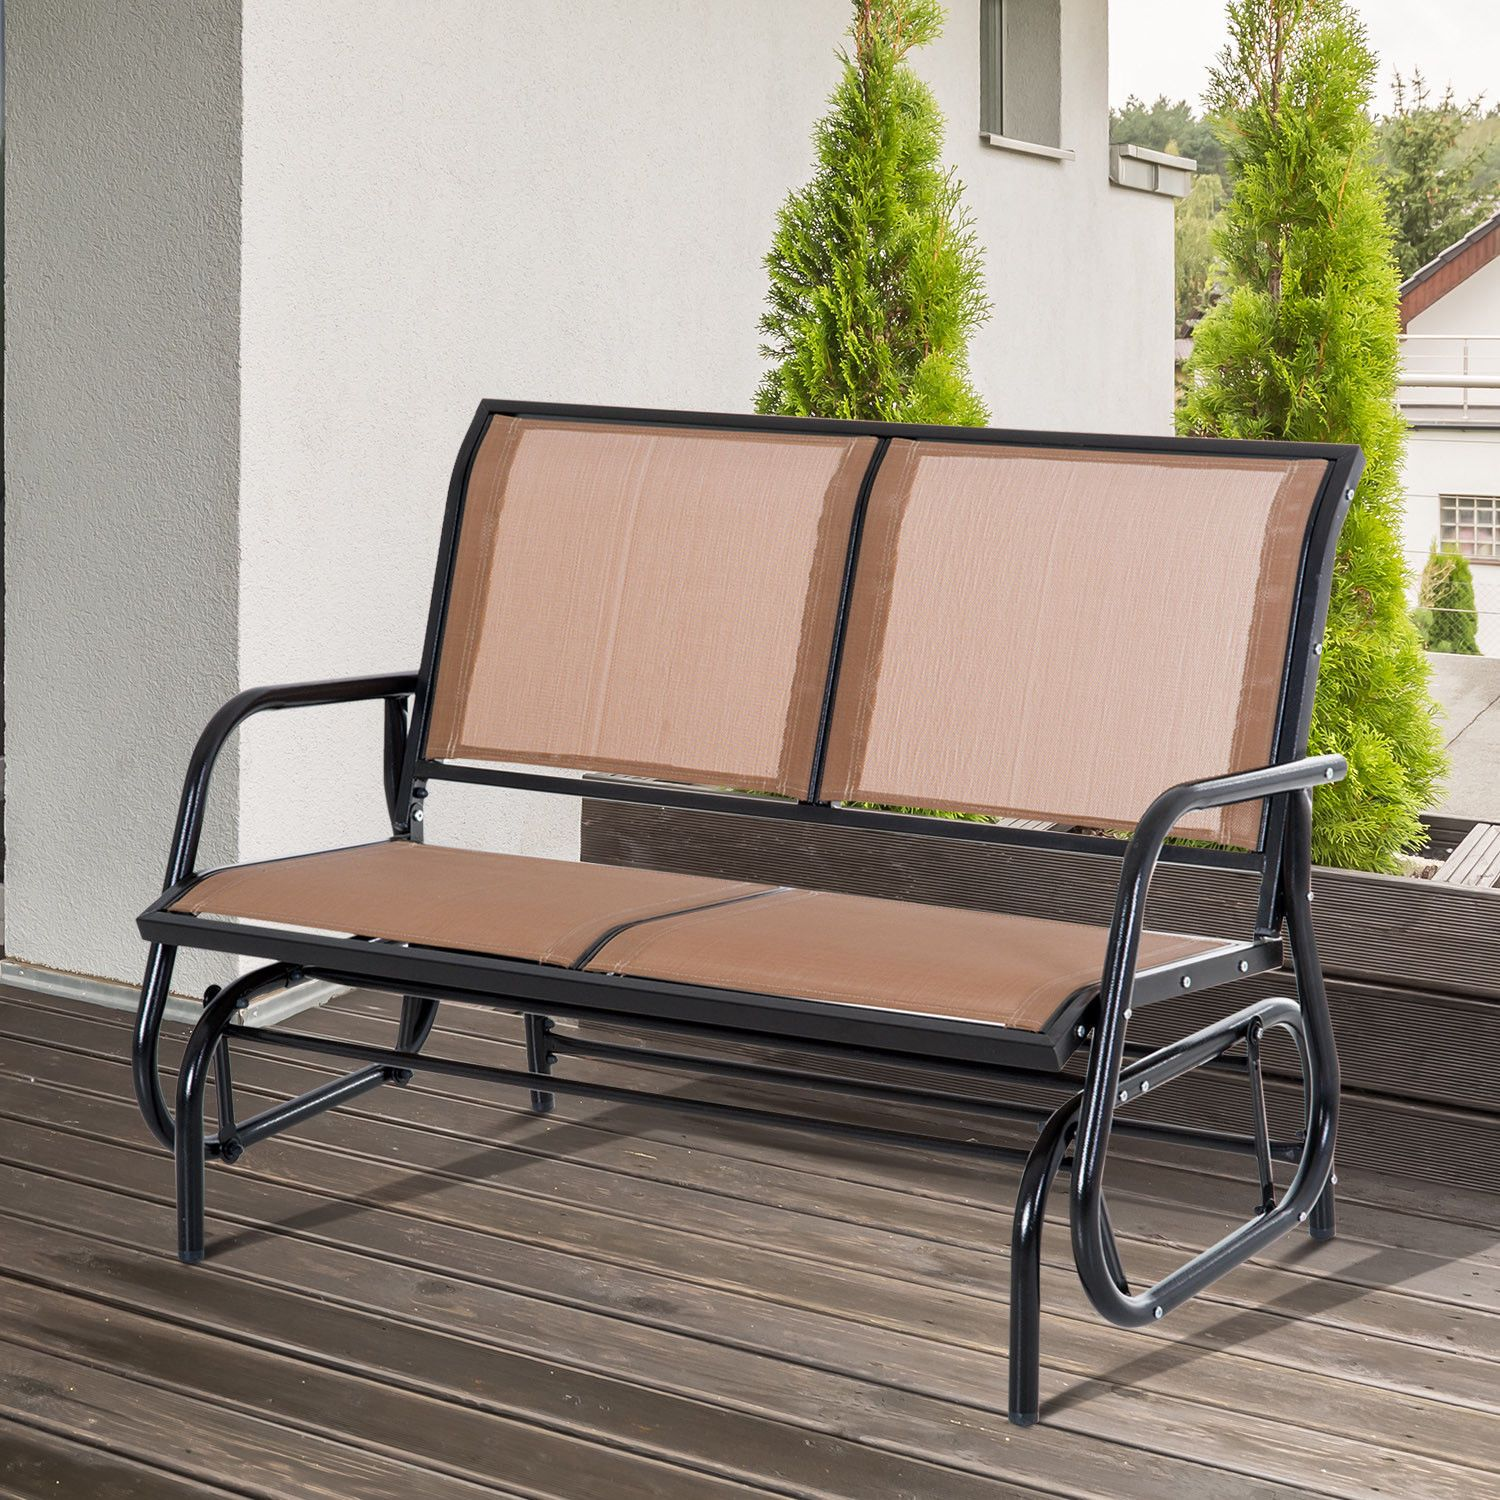 Outdoor patio glider double swing chair garden person rocking